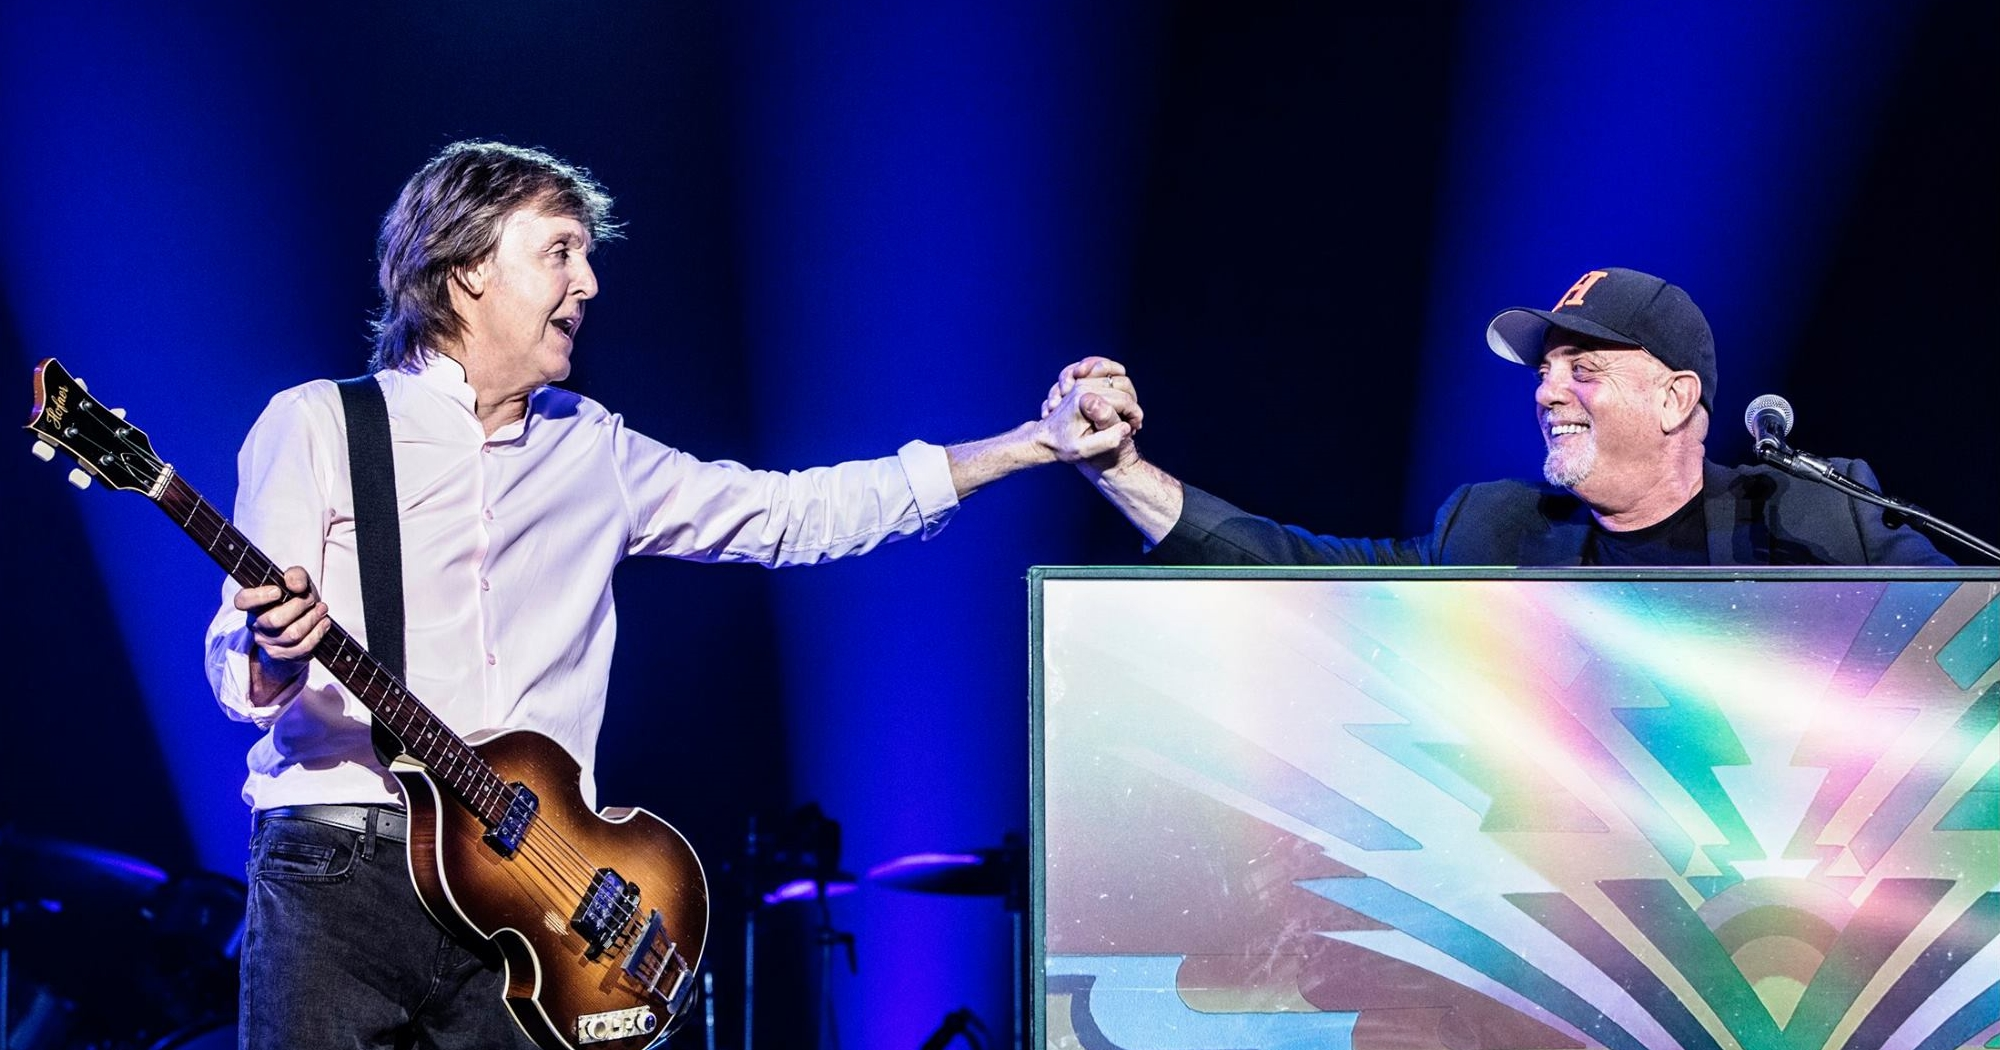 Billy Joel Joins Paul McCartney In New York